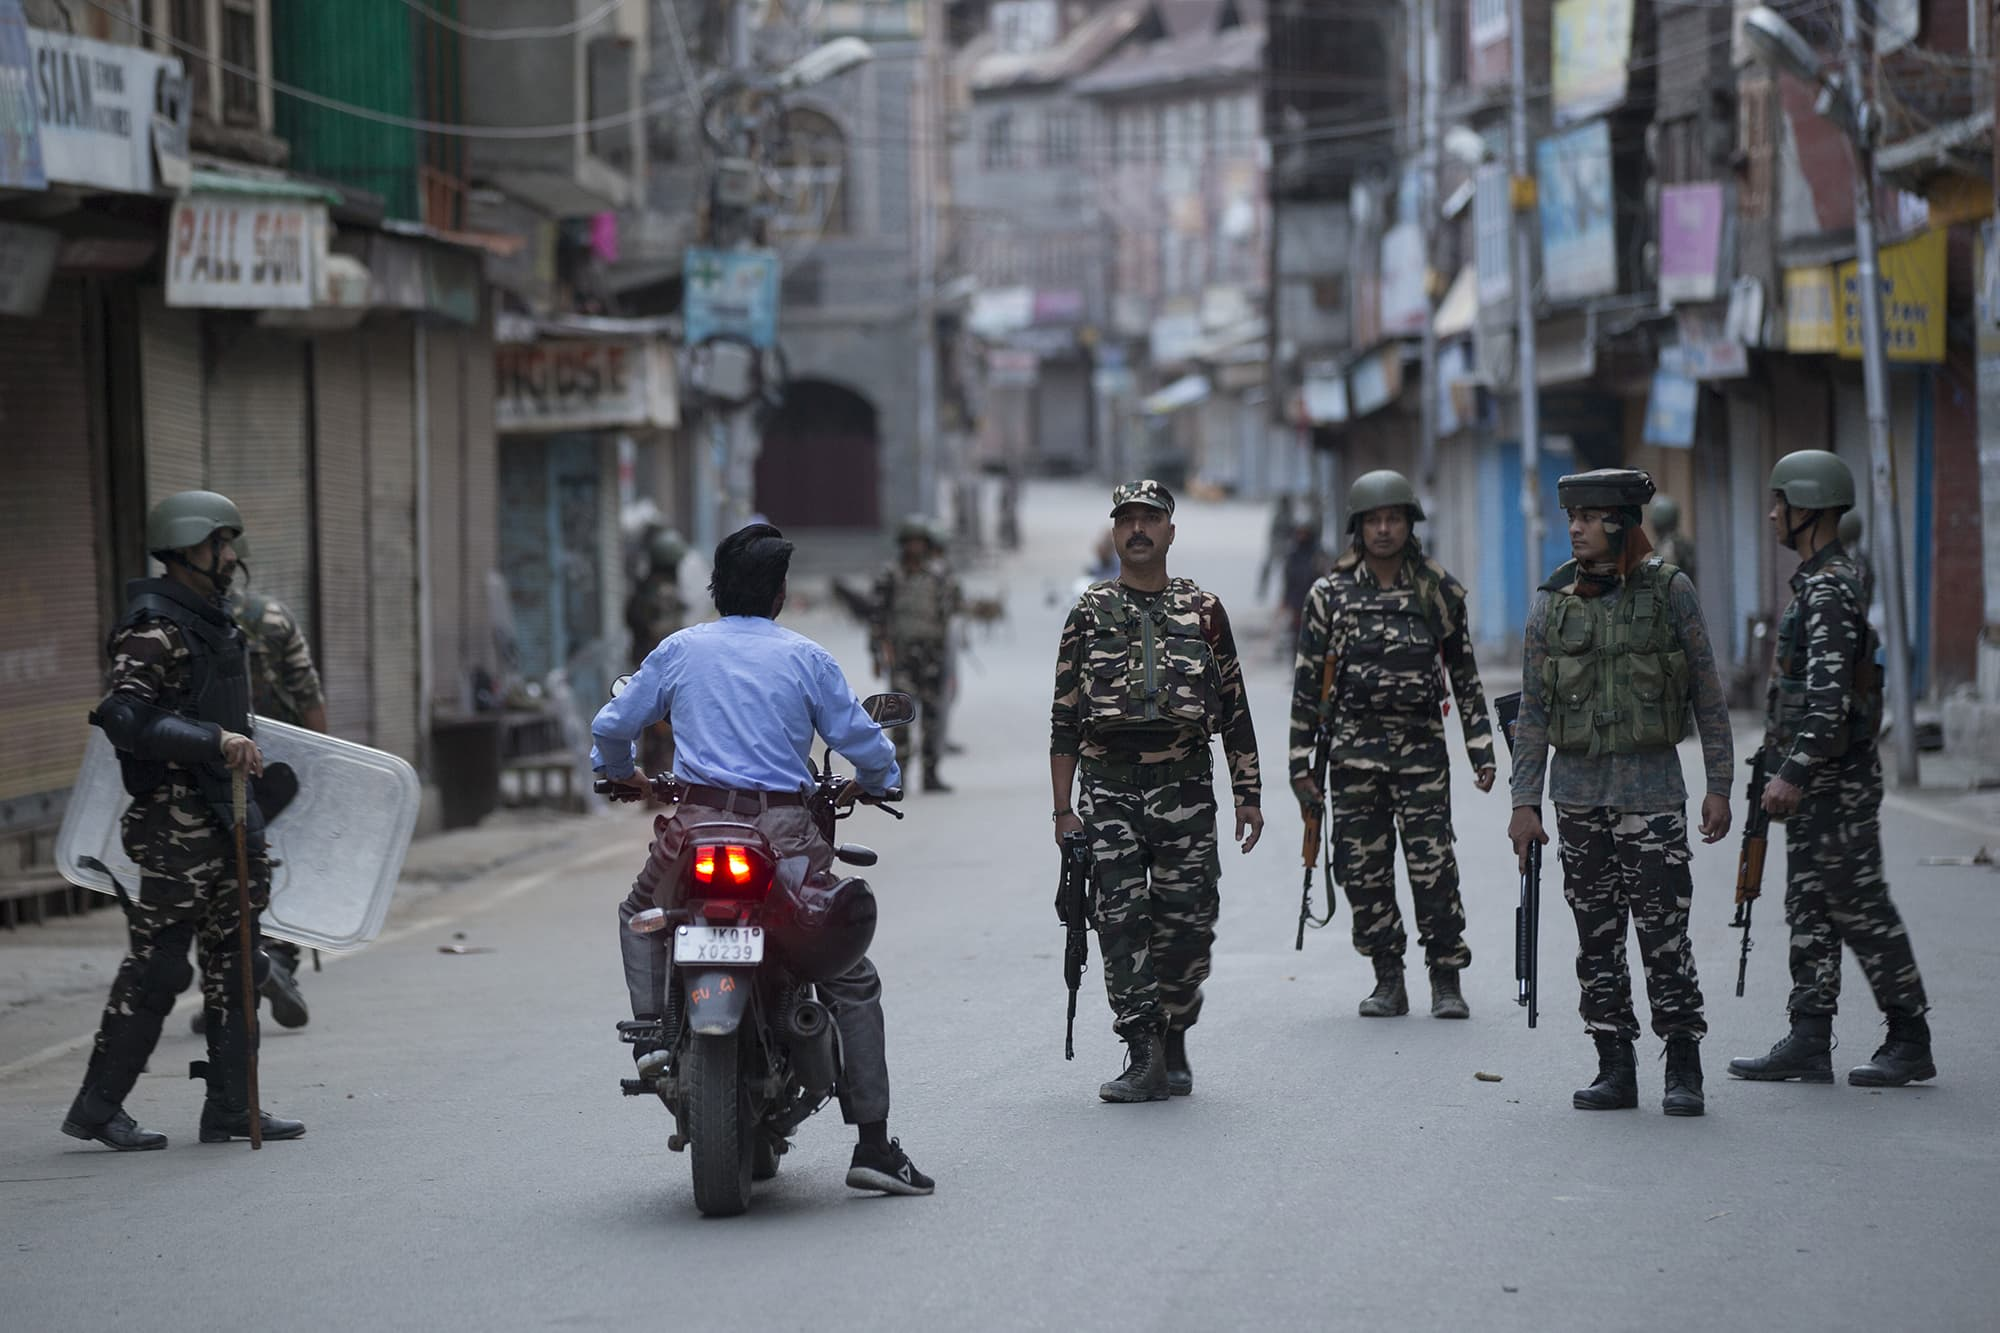 Indian paramilitary soldiers question a citizen on a motorcycle during curfew in Srinagar. ─ AP